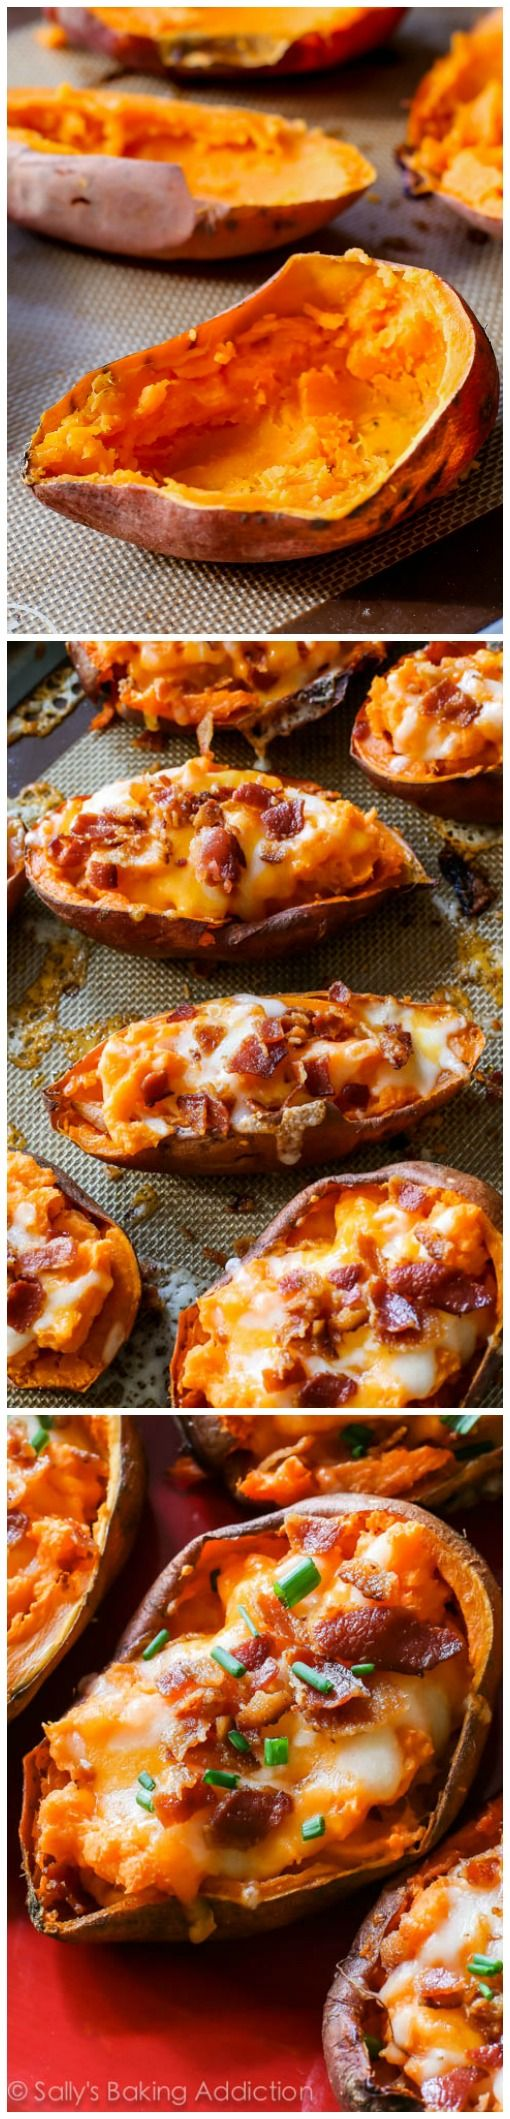 Enjoy a big plate of extra crispy, extra loaded sweet potato skins in no time! This game-time favorite is hard to resist and would be perfect with a scoop of Whole Milk Plain Chobani Greek Yogurt.